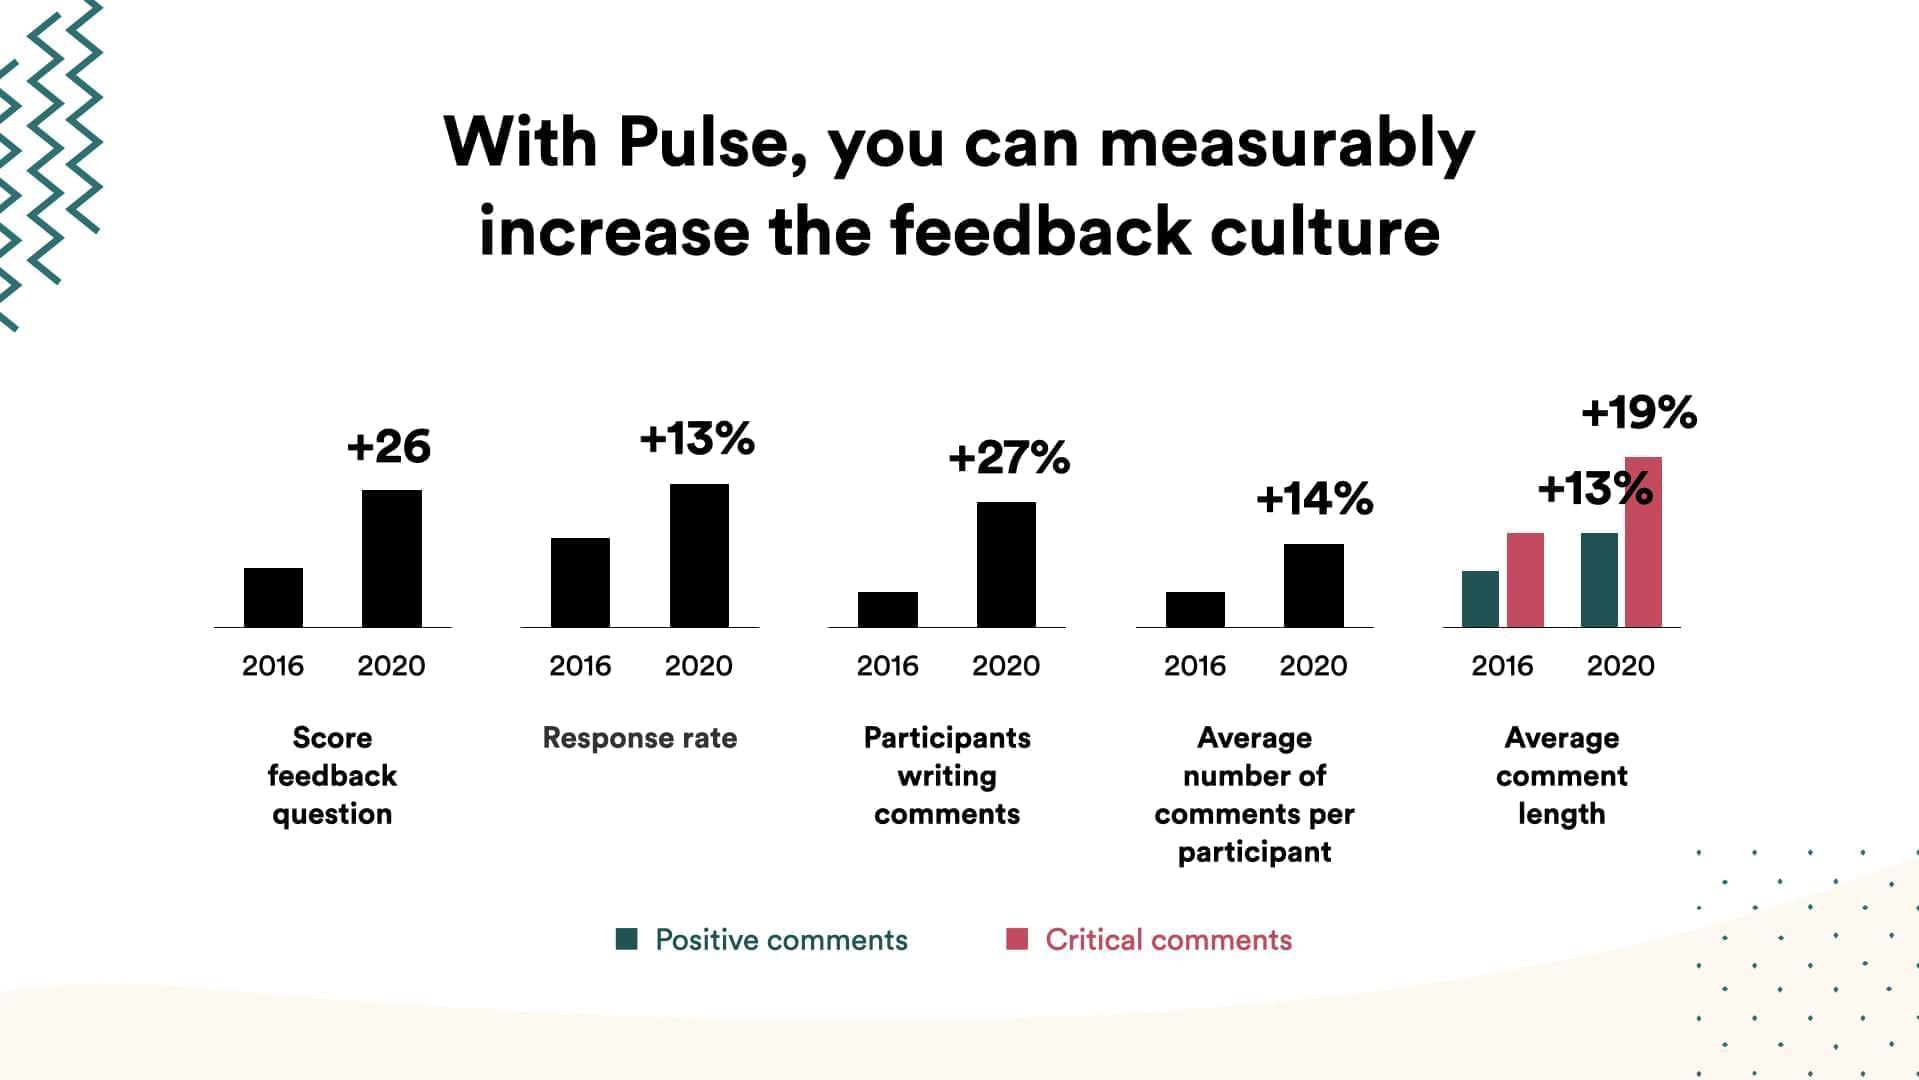 Multiple graphs with KPI's showing how positive the feedback culture improved from 2016 to 2020